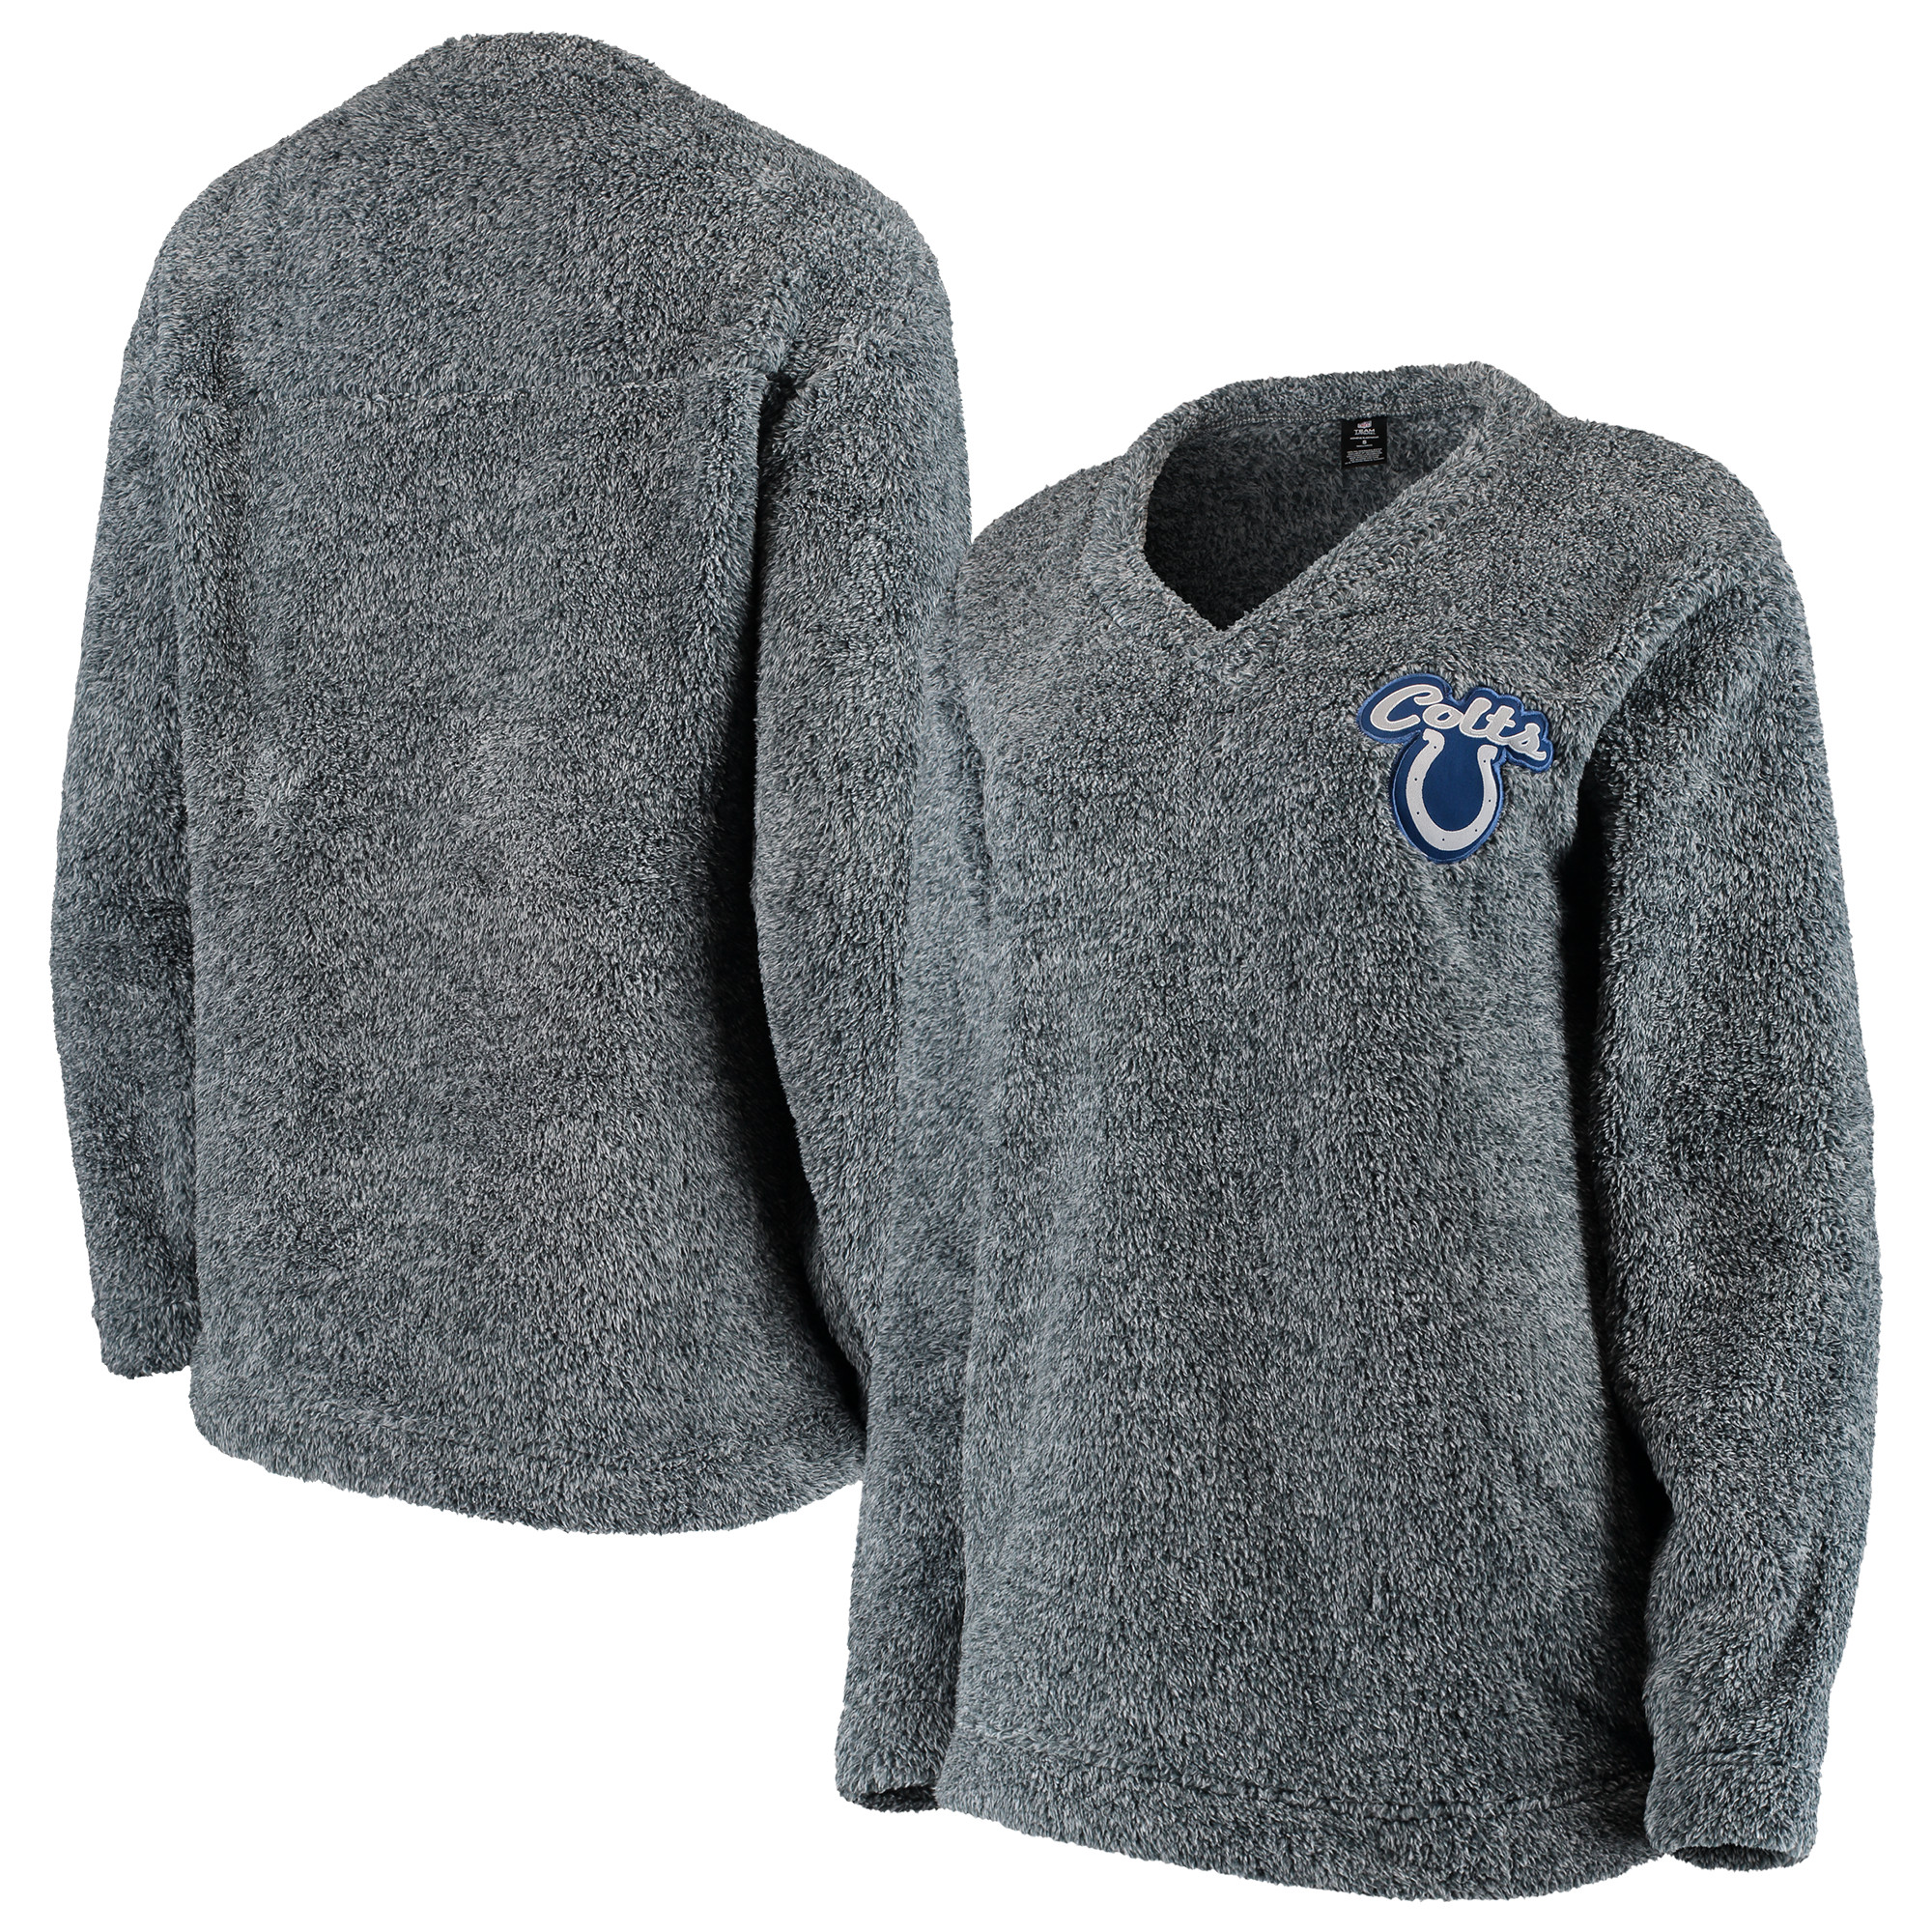 Indianapolis Colts Concepts Sport Women's Trifecta Pullover Sweatshirt - Charcoal